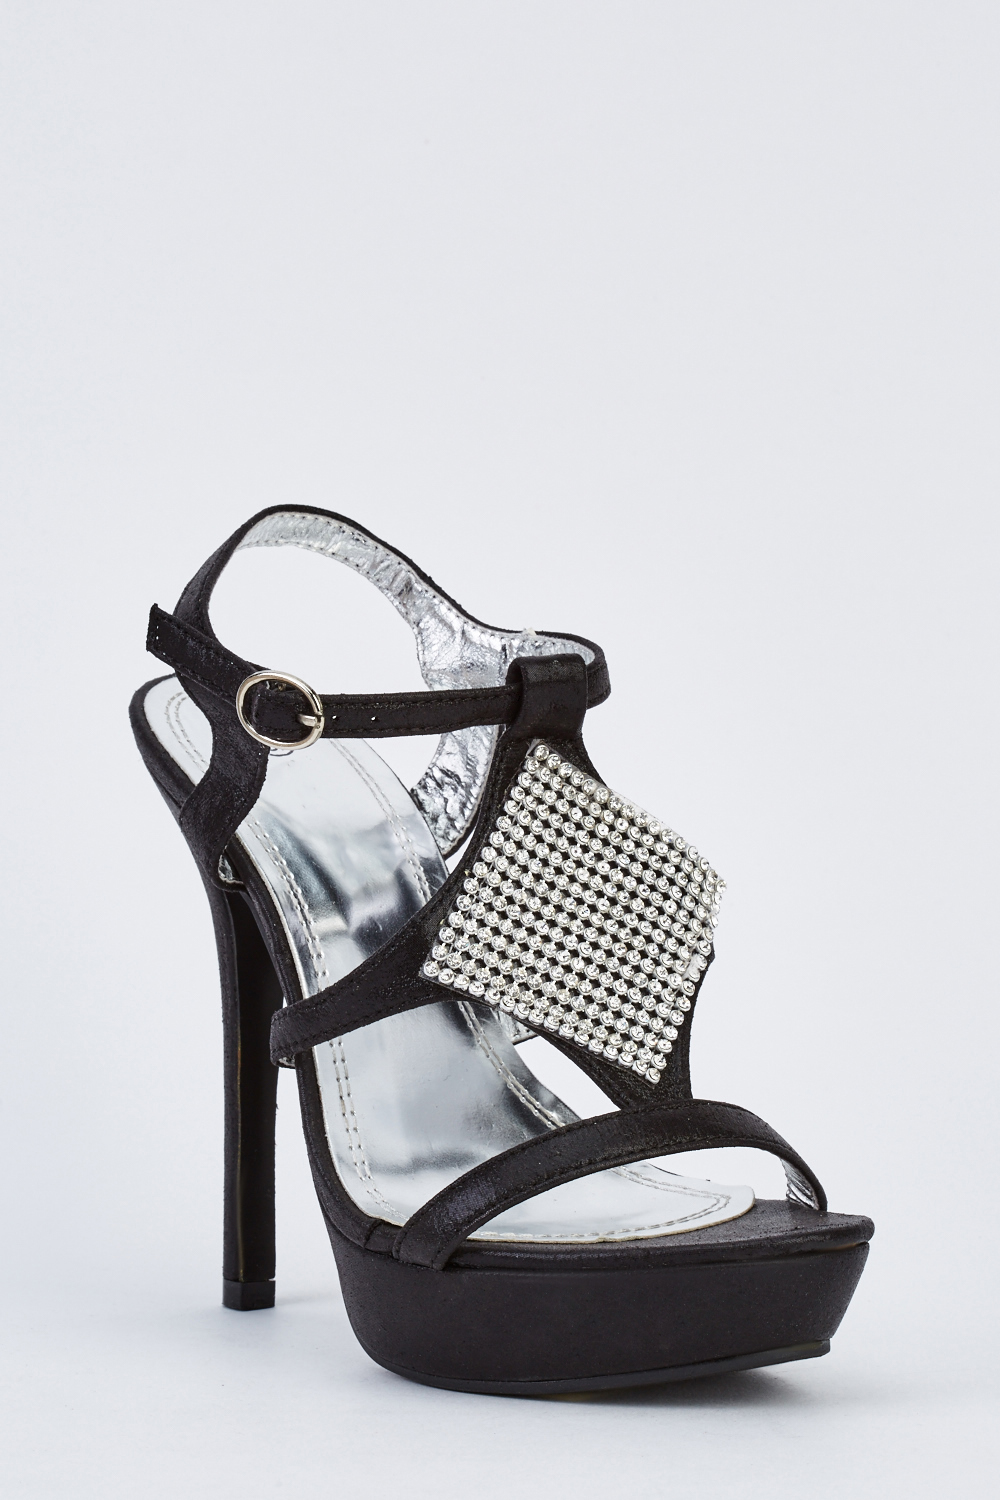 0d59225893b Encrusted High Heel Platform Sandals - Black - Just £5